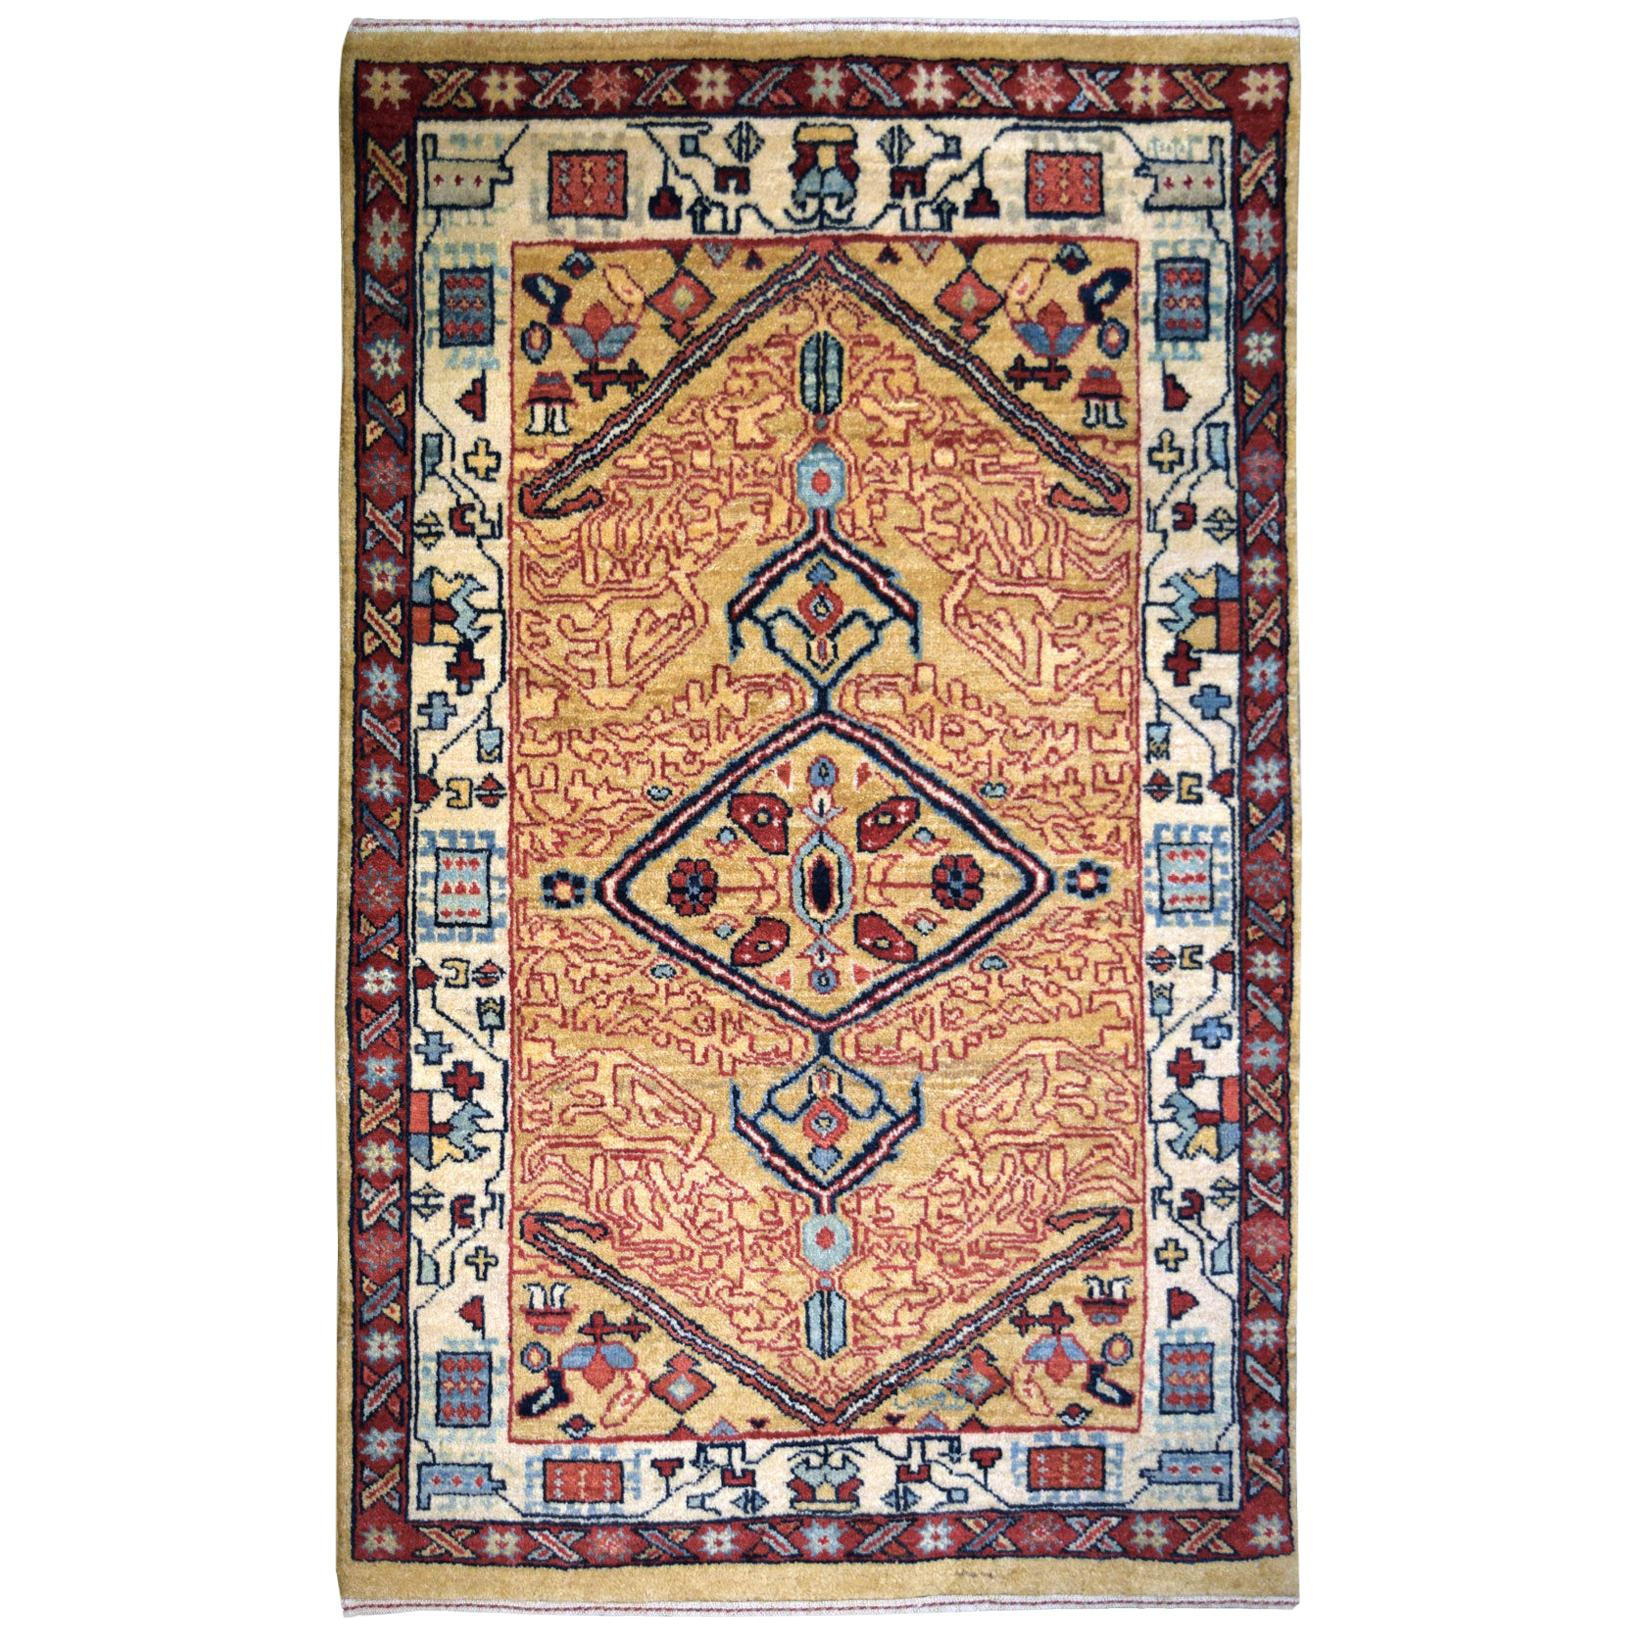 Gold, Blue, and Red Wool Transitional Persian Carpet